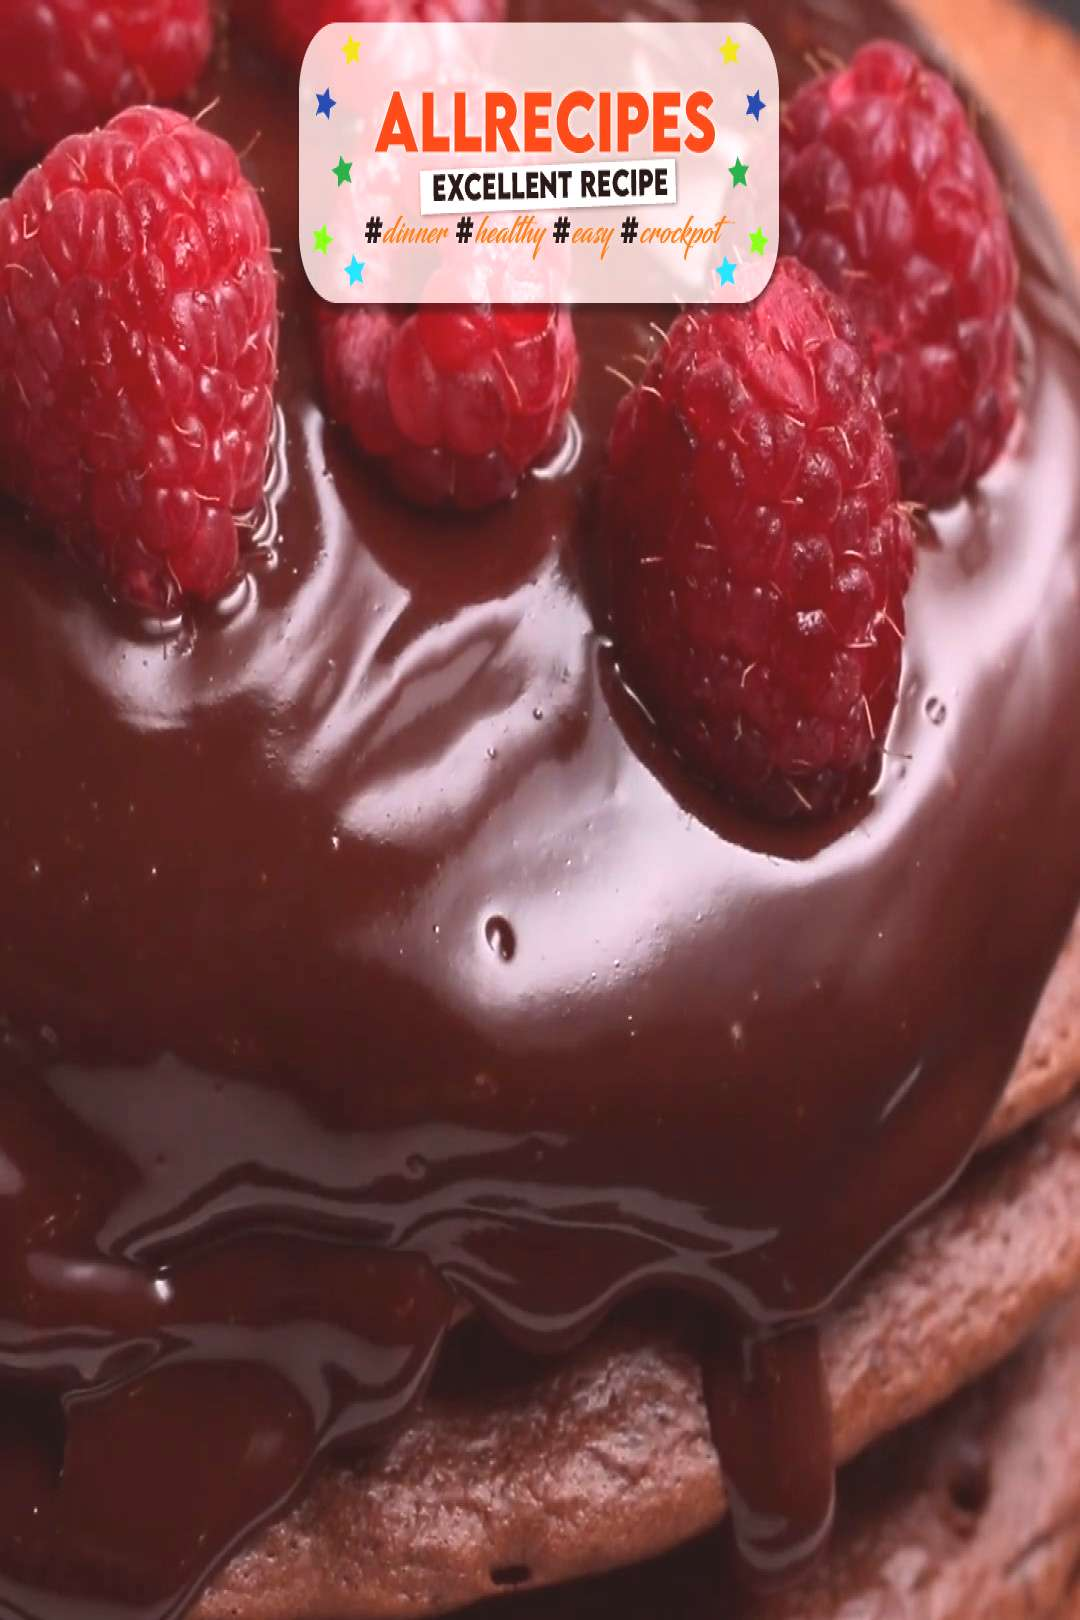 Chocolate Pancakes Recipe - - In this video, you'll see how to make this simple but tasty and del